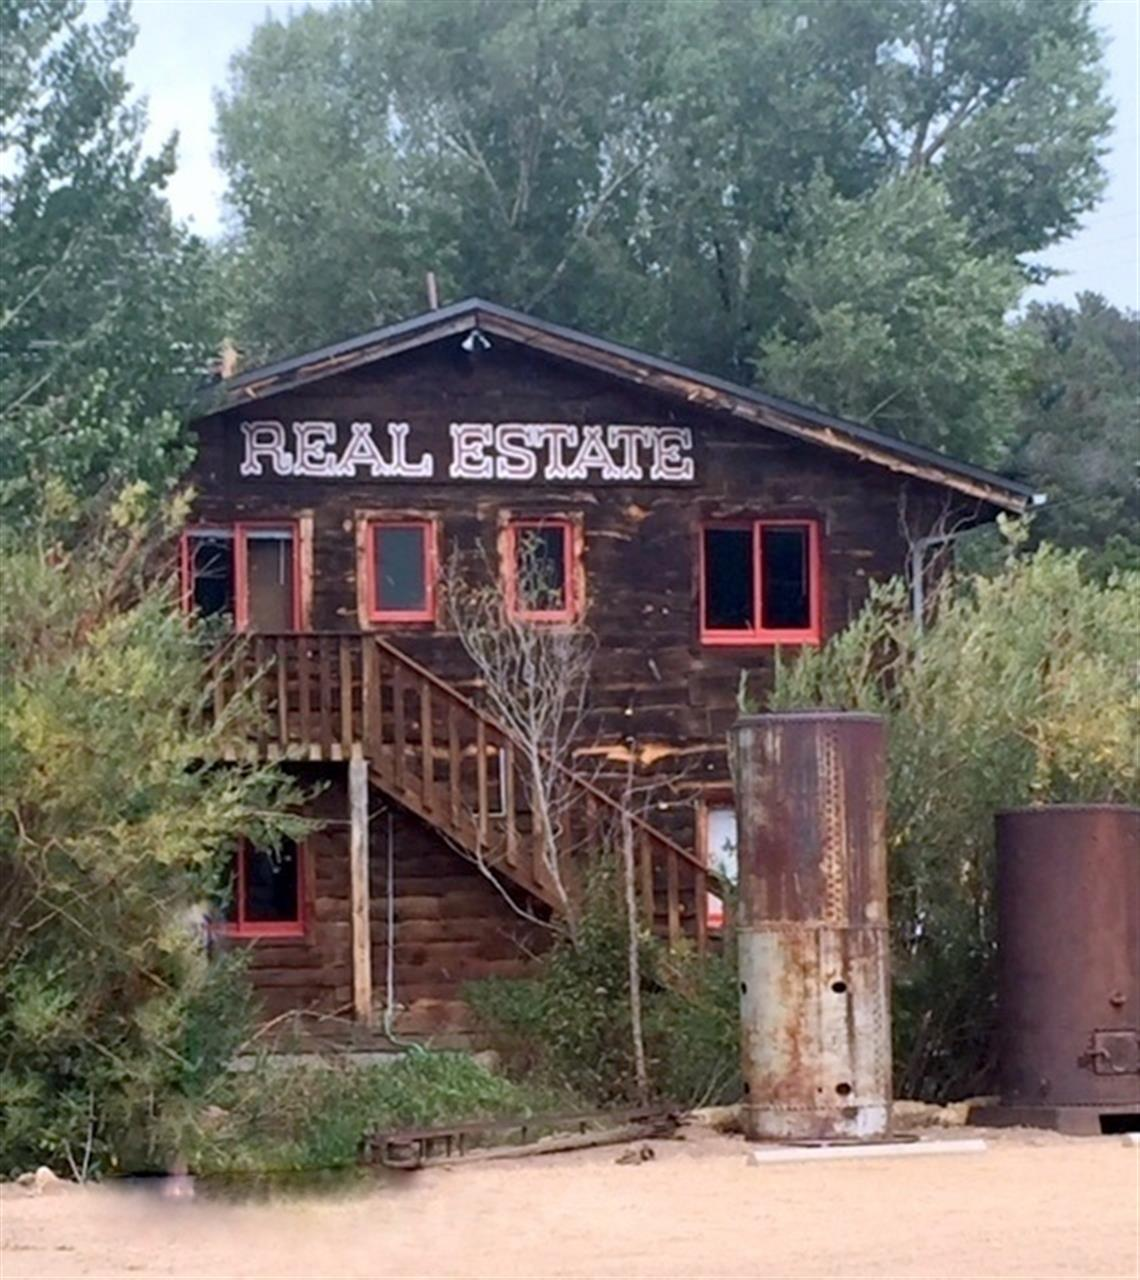 Couldn't resist a photo of the Real Estate office in Ned.